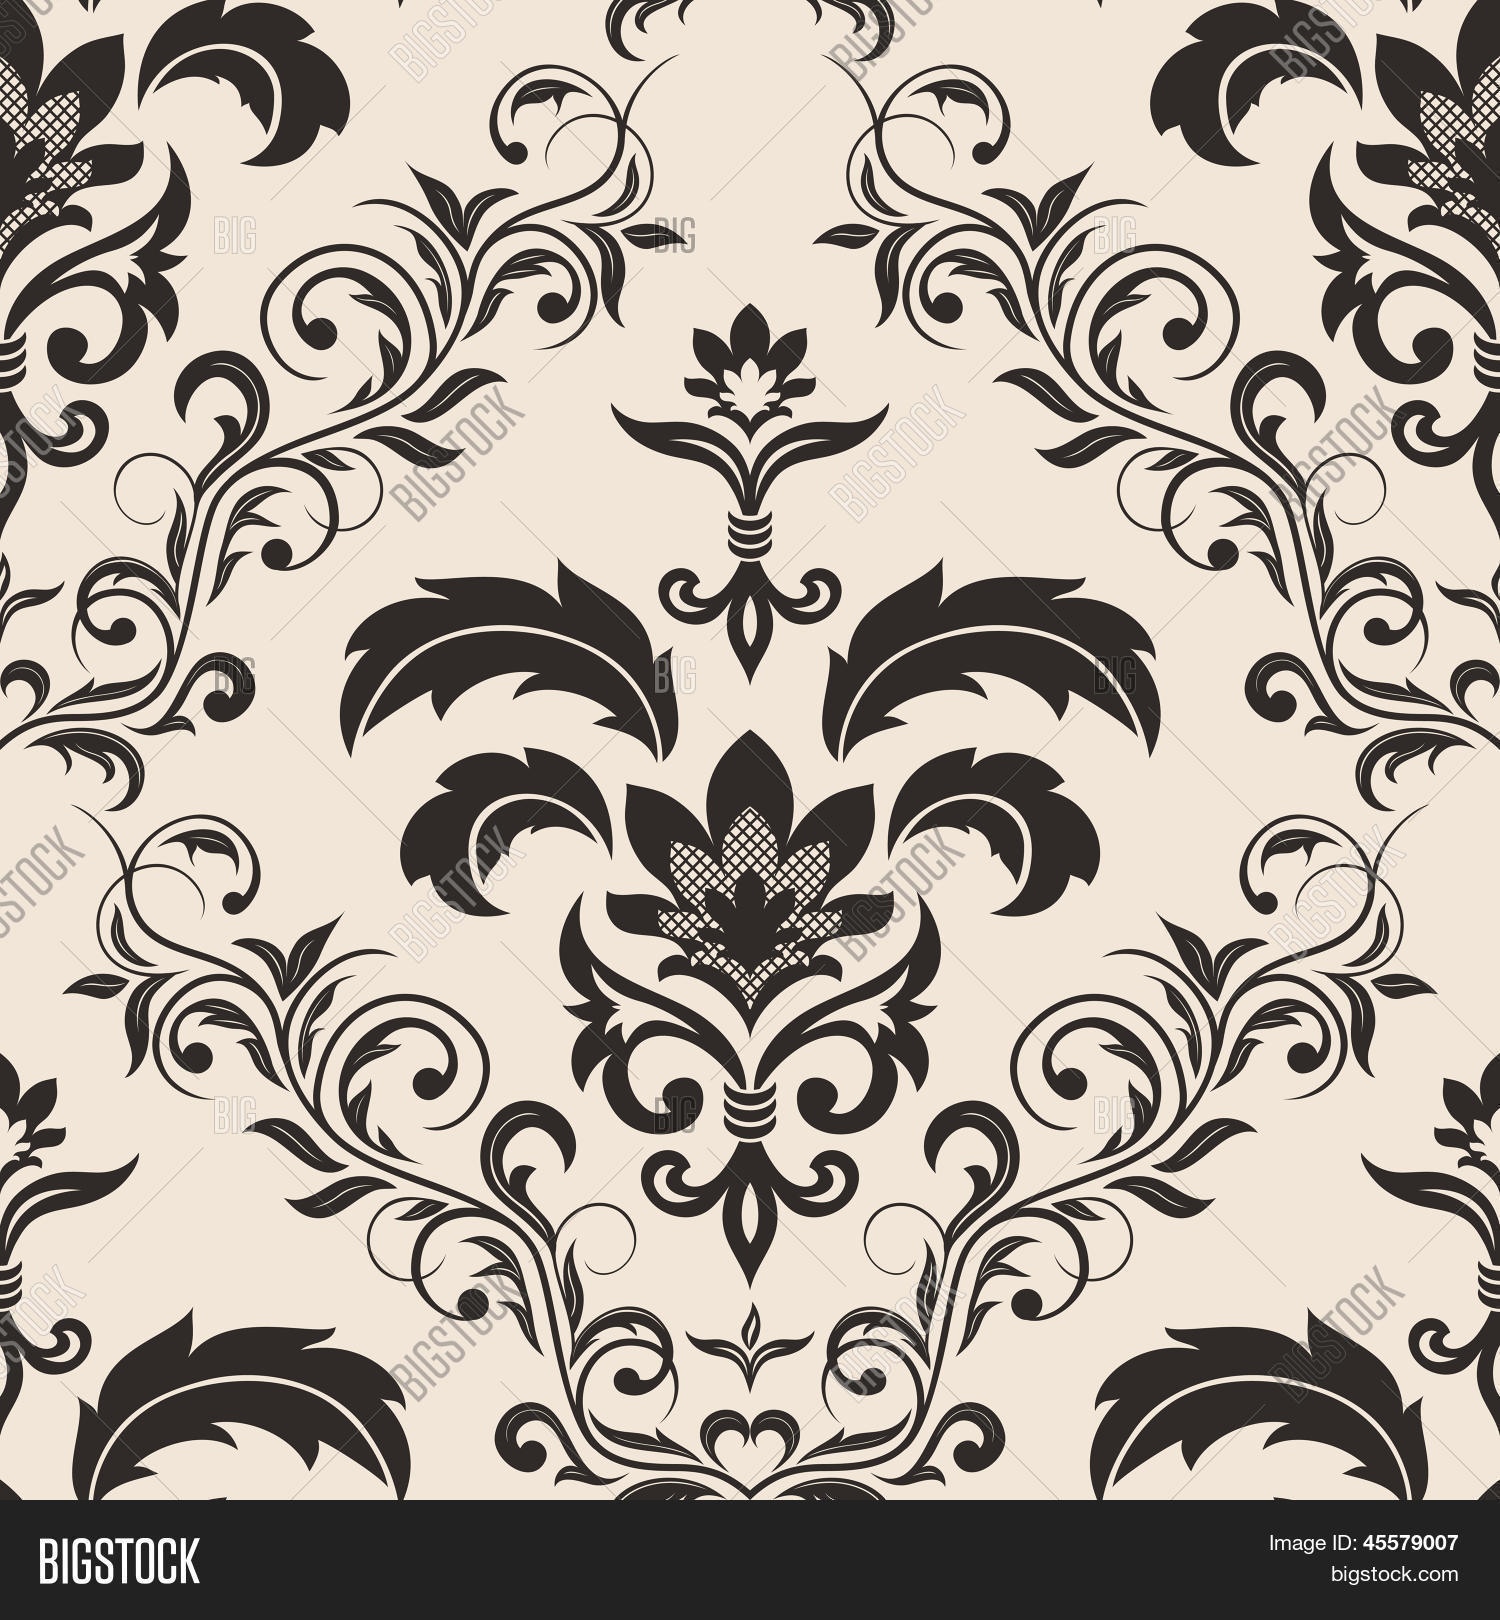 Seamless Gothic Floral Wallpaper